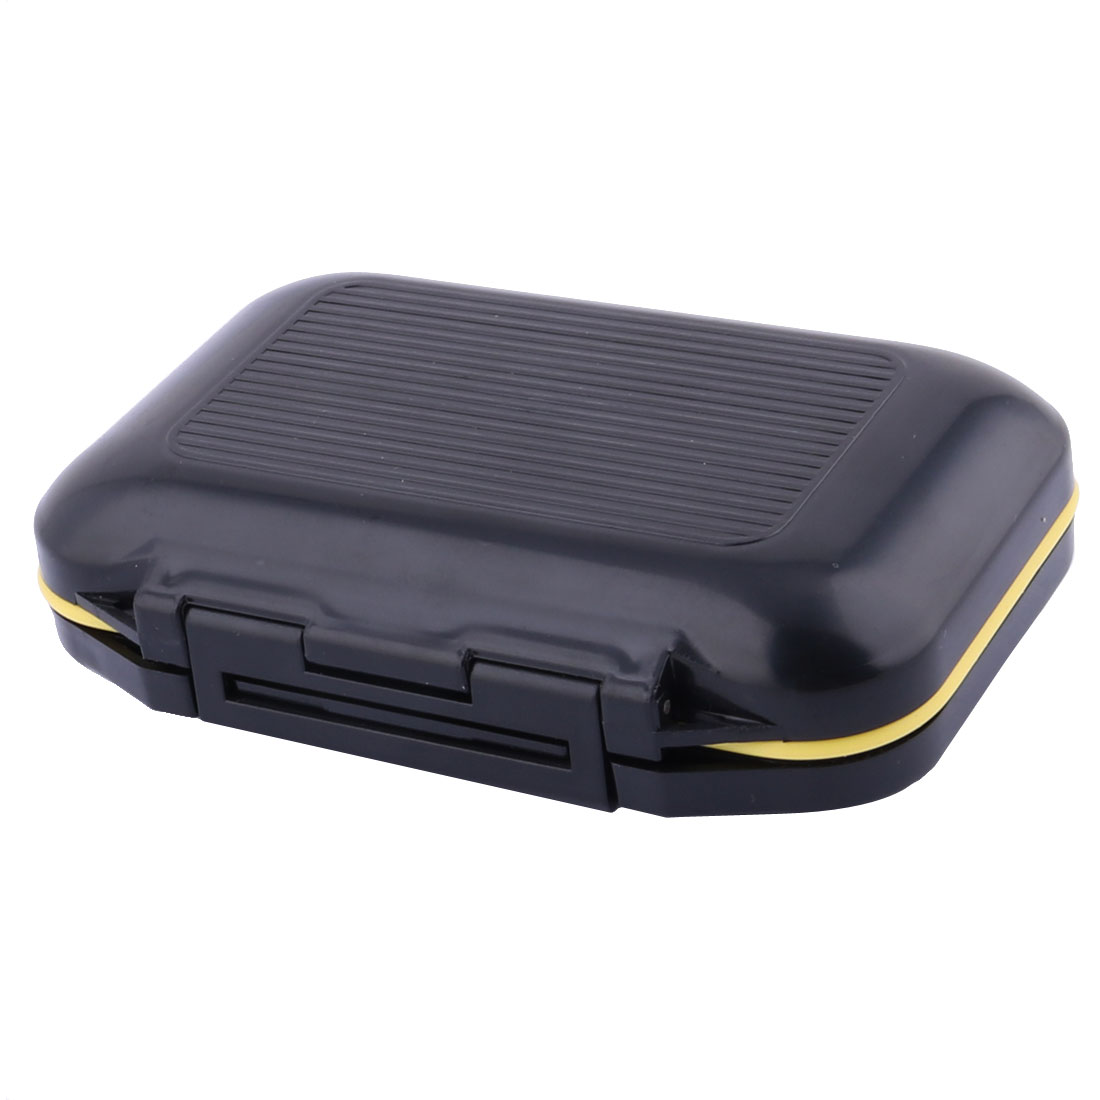 Fishing Plastic Double Side 12 Compartments Bait Box Case Container Black